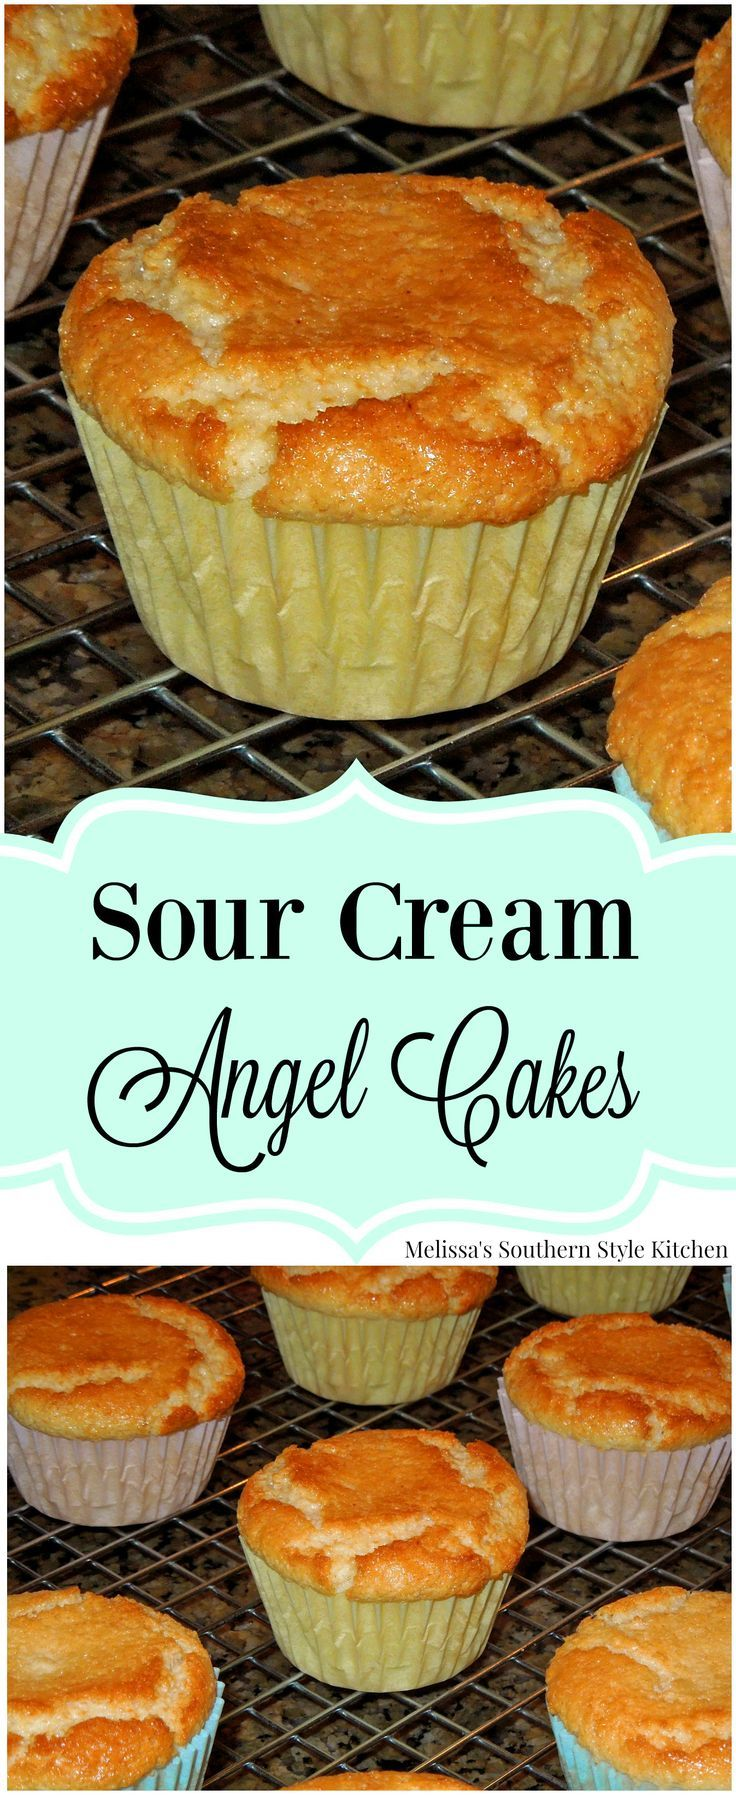 Sour Cream Angel Cakes